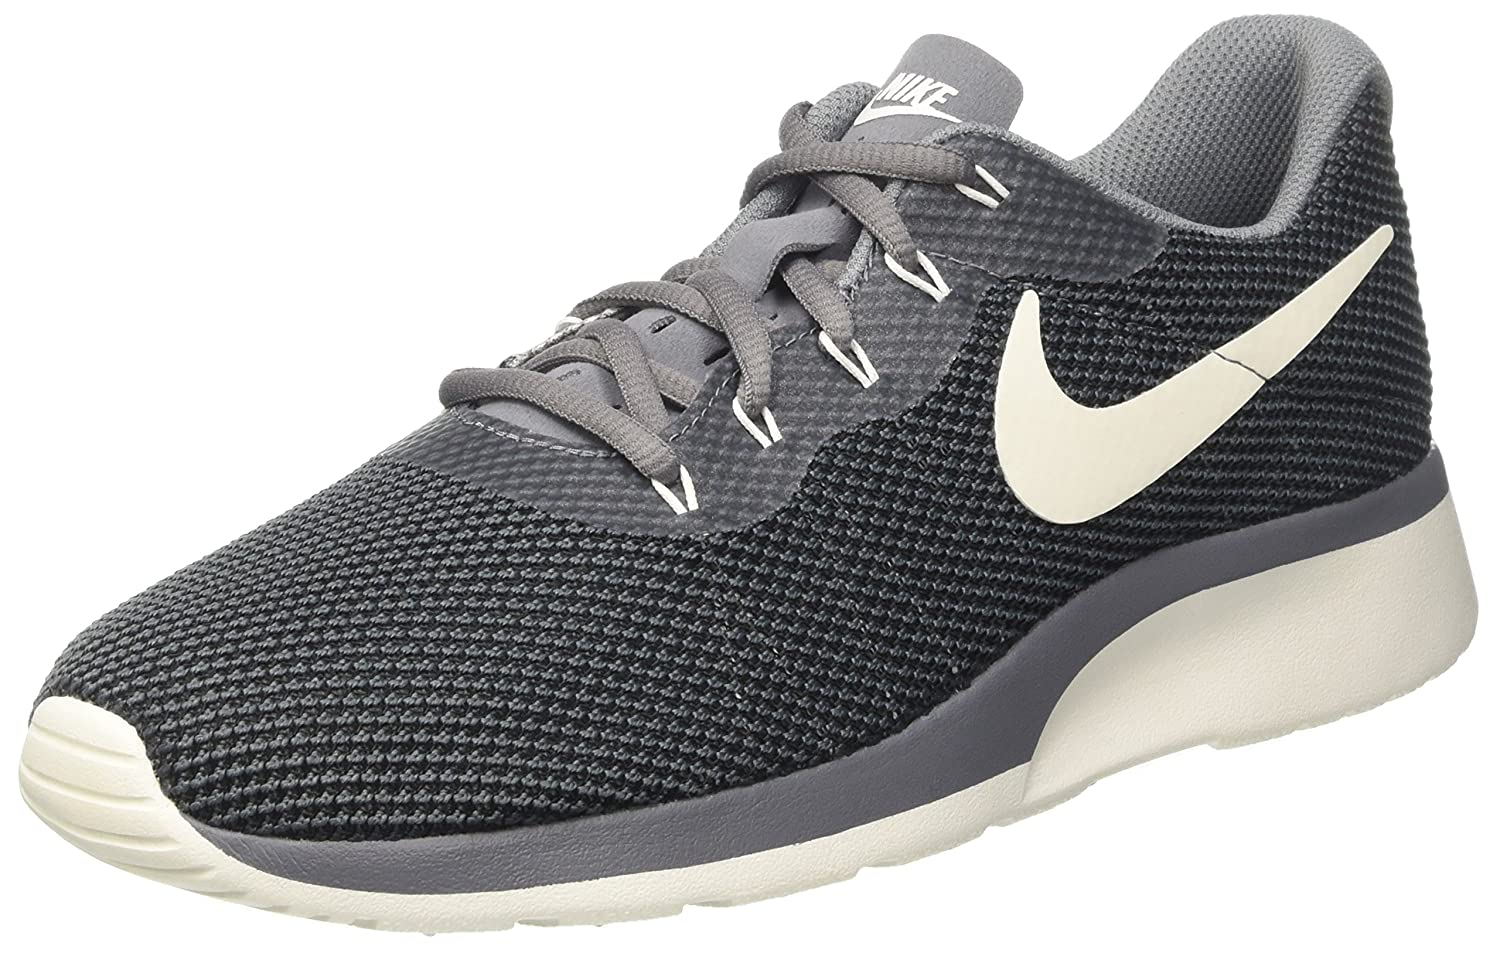 NIKE Women's Tanjun Running Shoes B005V2PGTC 10 B(M) US|Cool Grey/Sail-black